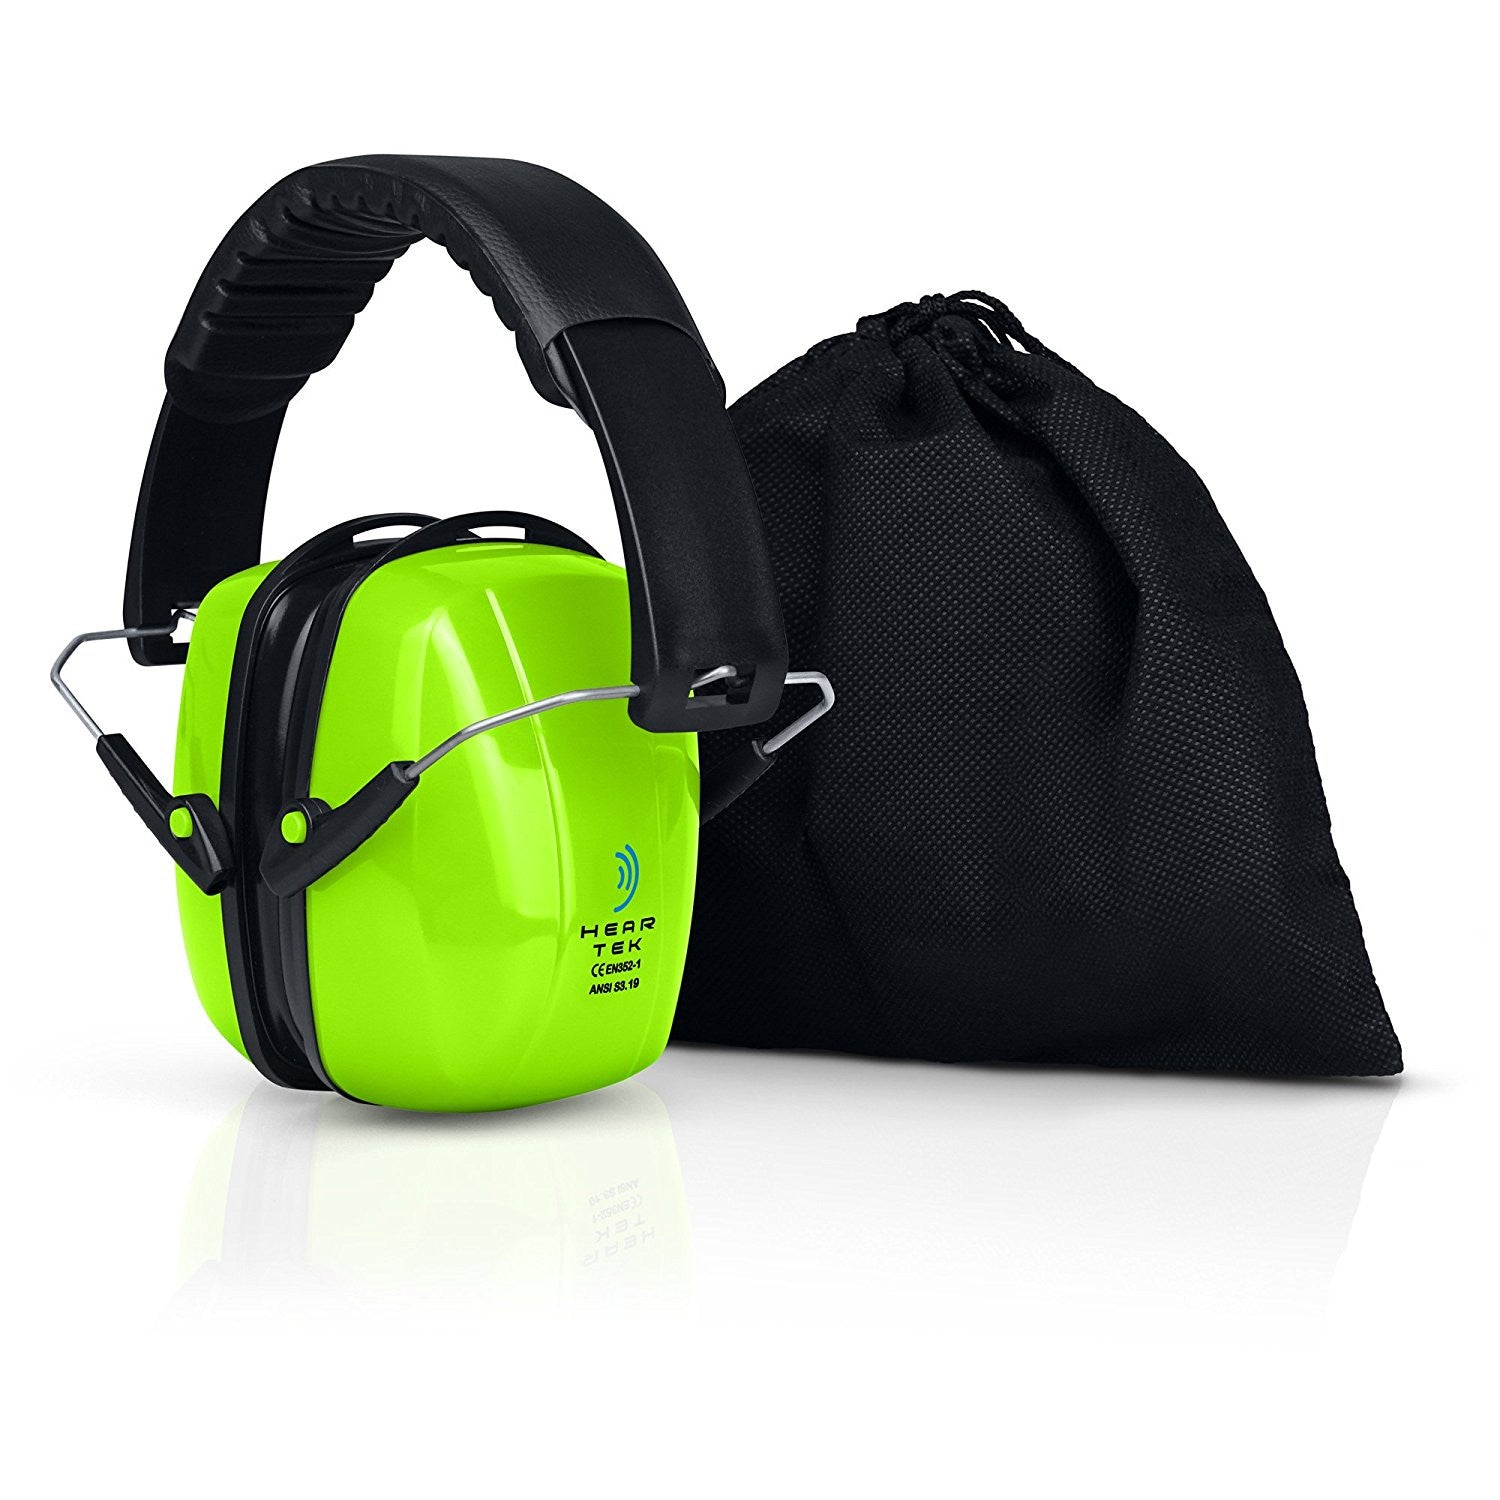 Safety Ear Muffs Adjustable Adult Size Noise Canceling Ear Hearing Protection Green